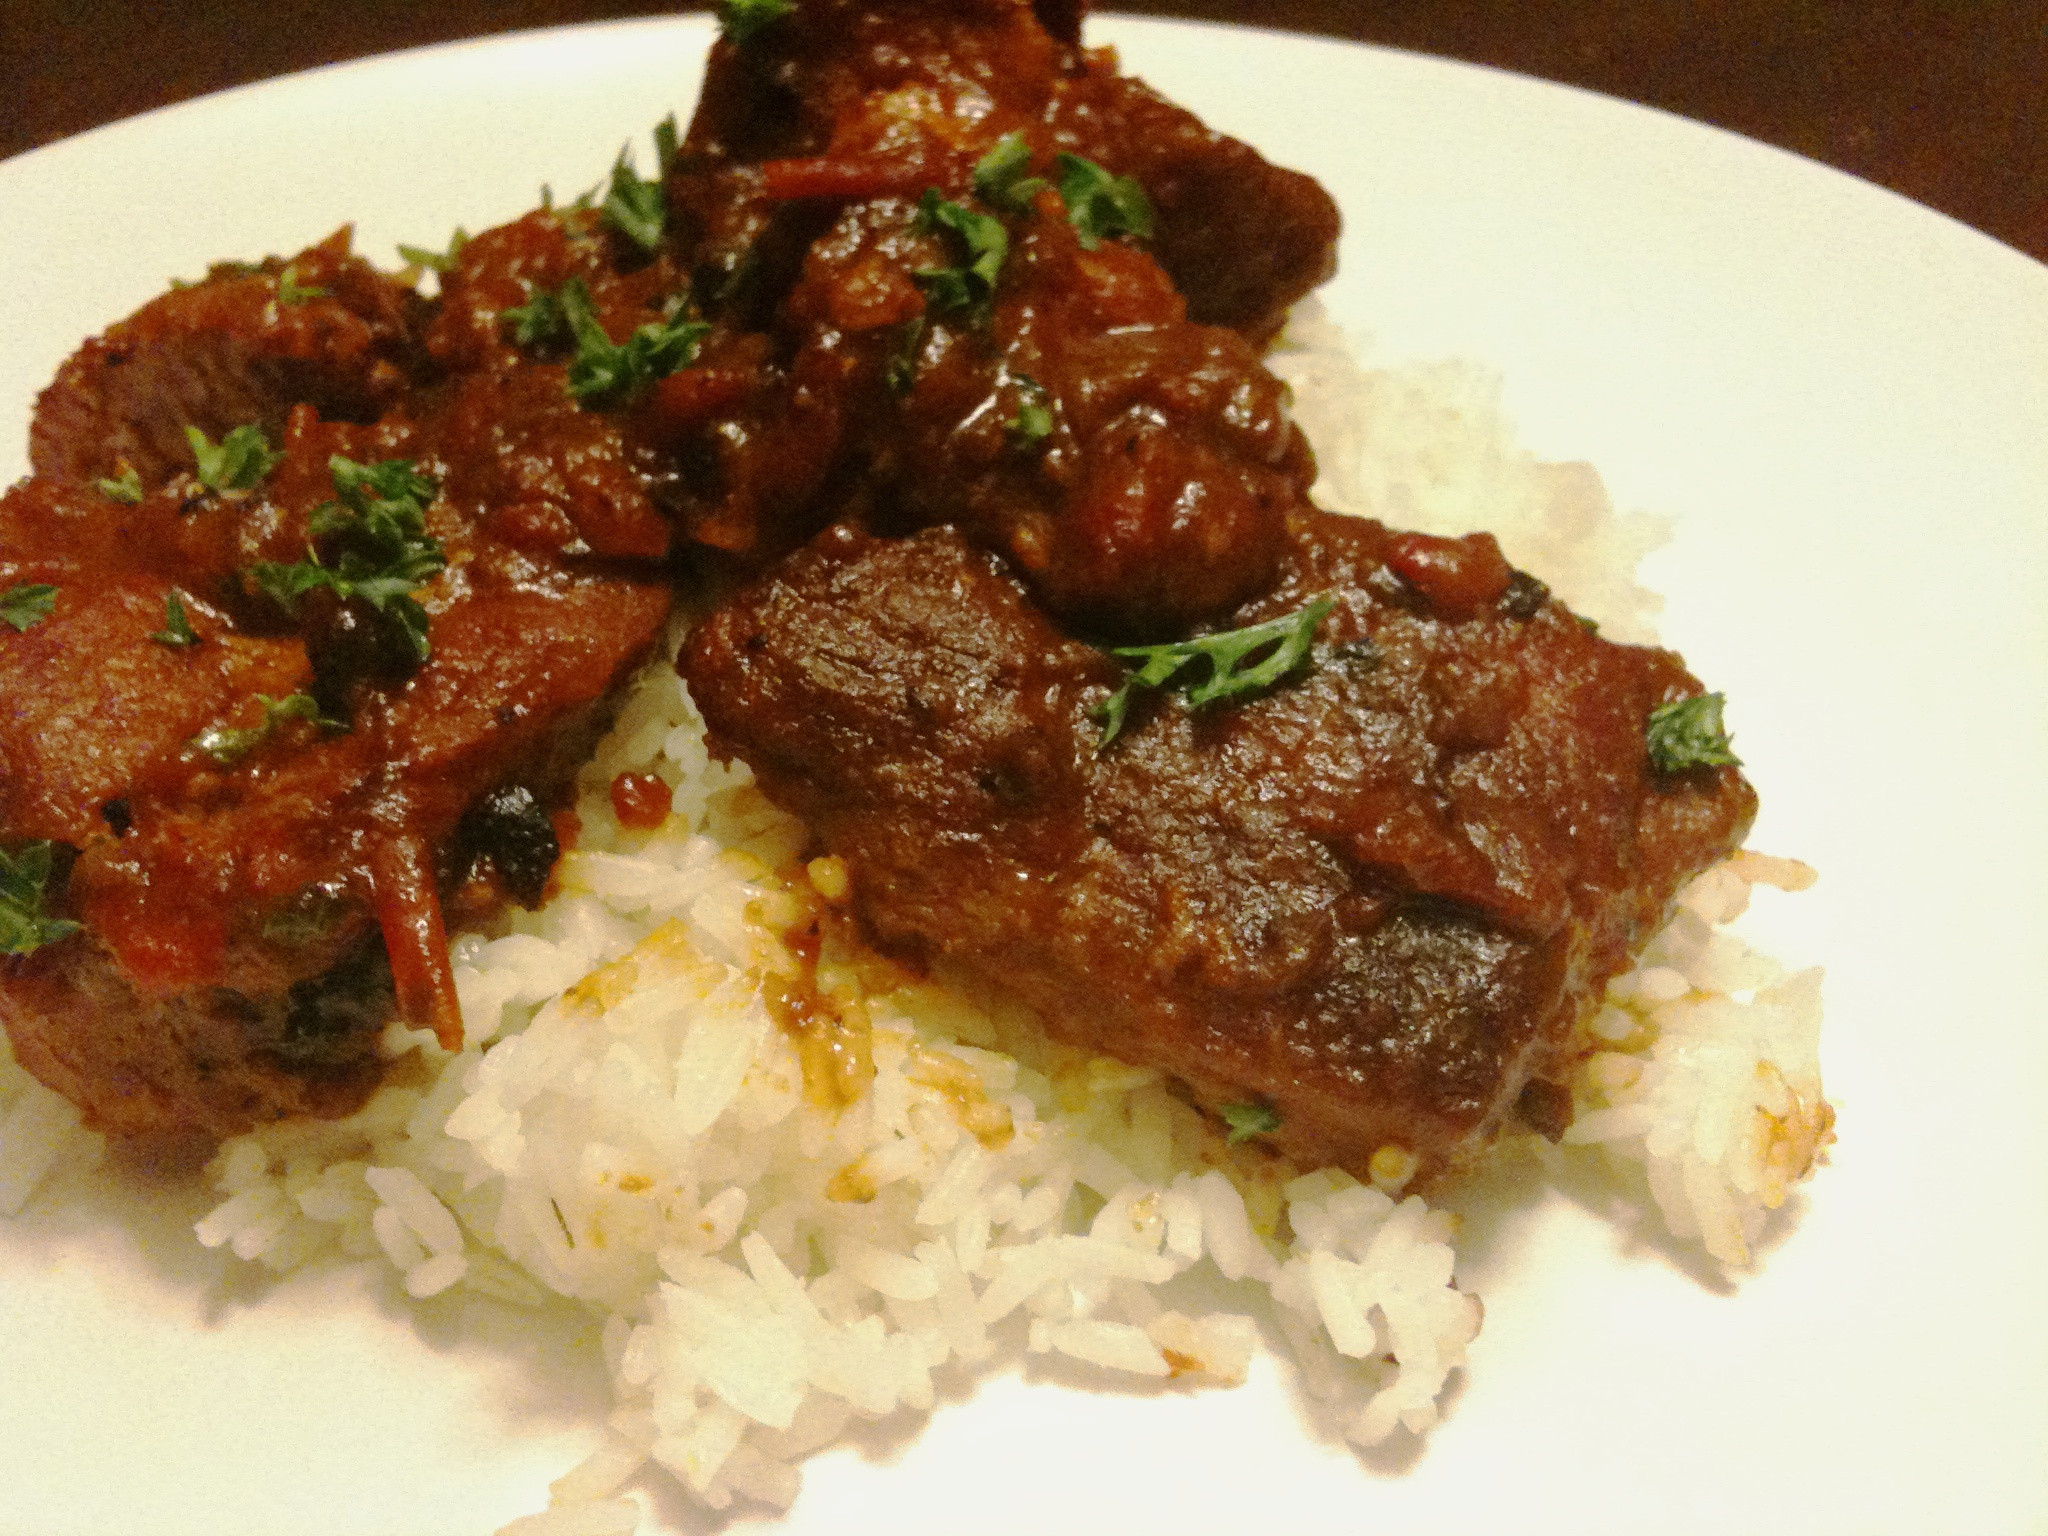 Braised Country Style Pork Ribs  Braised Country Style Pork Ribs